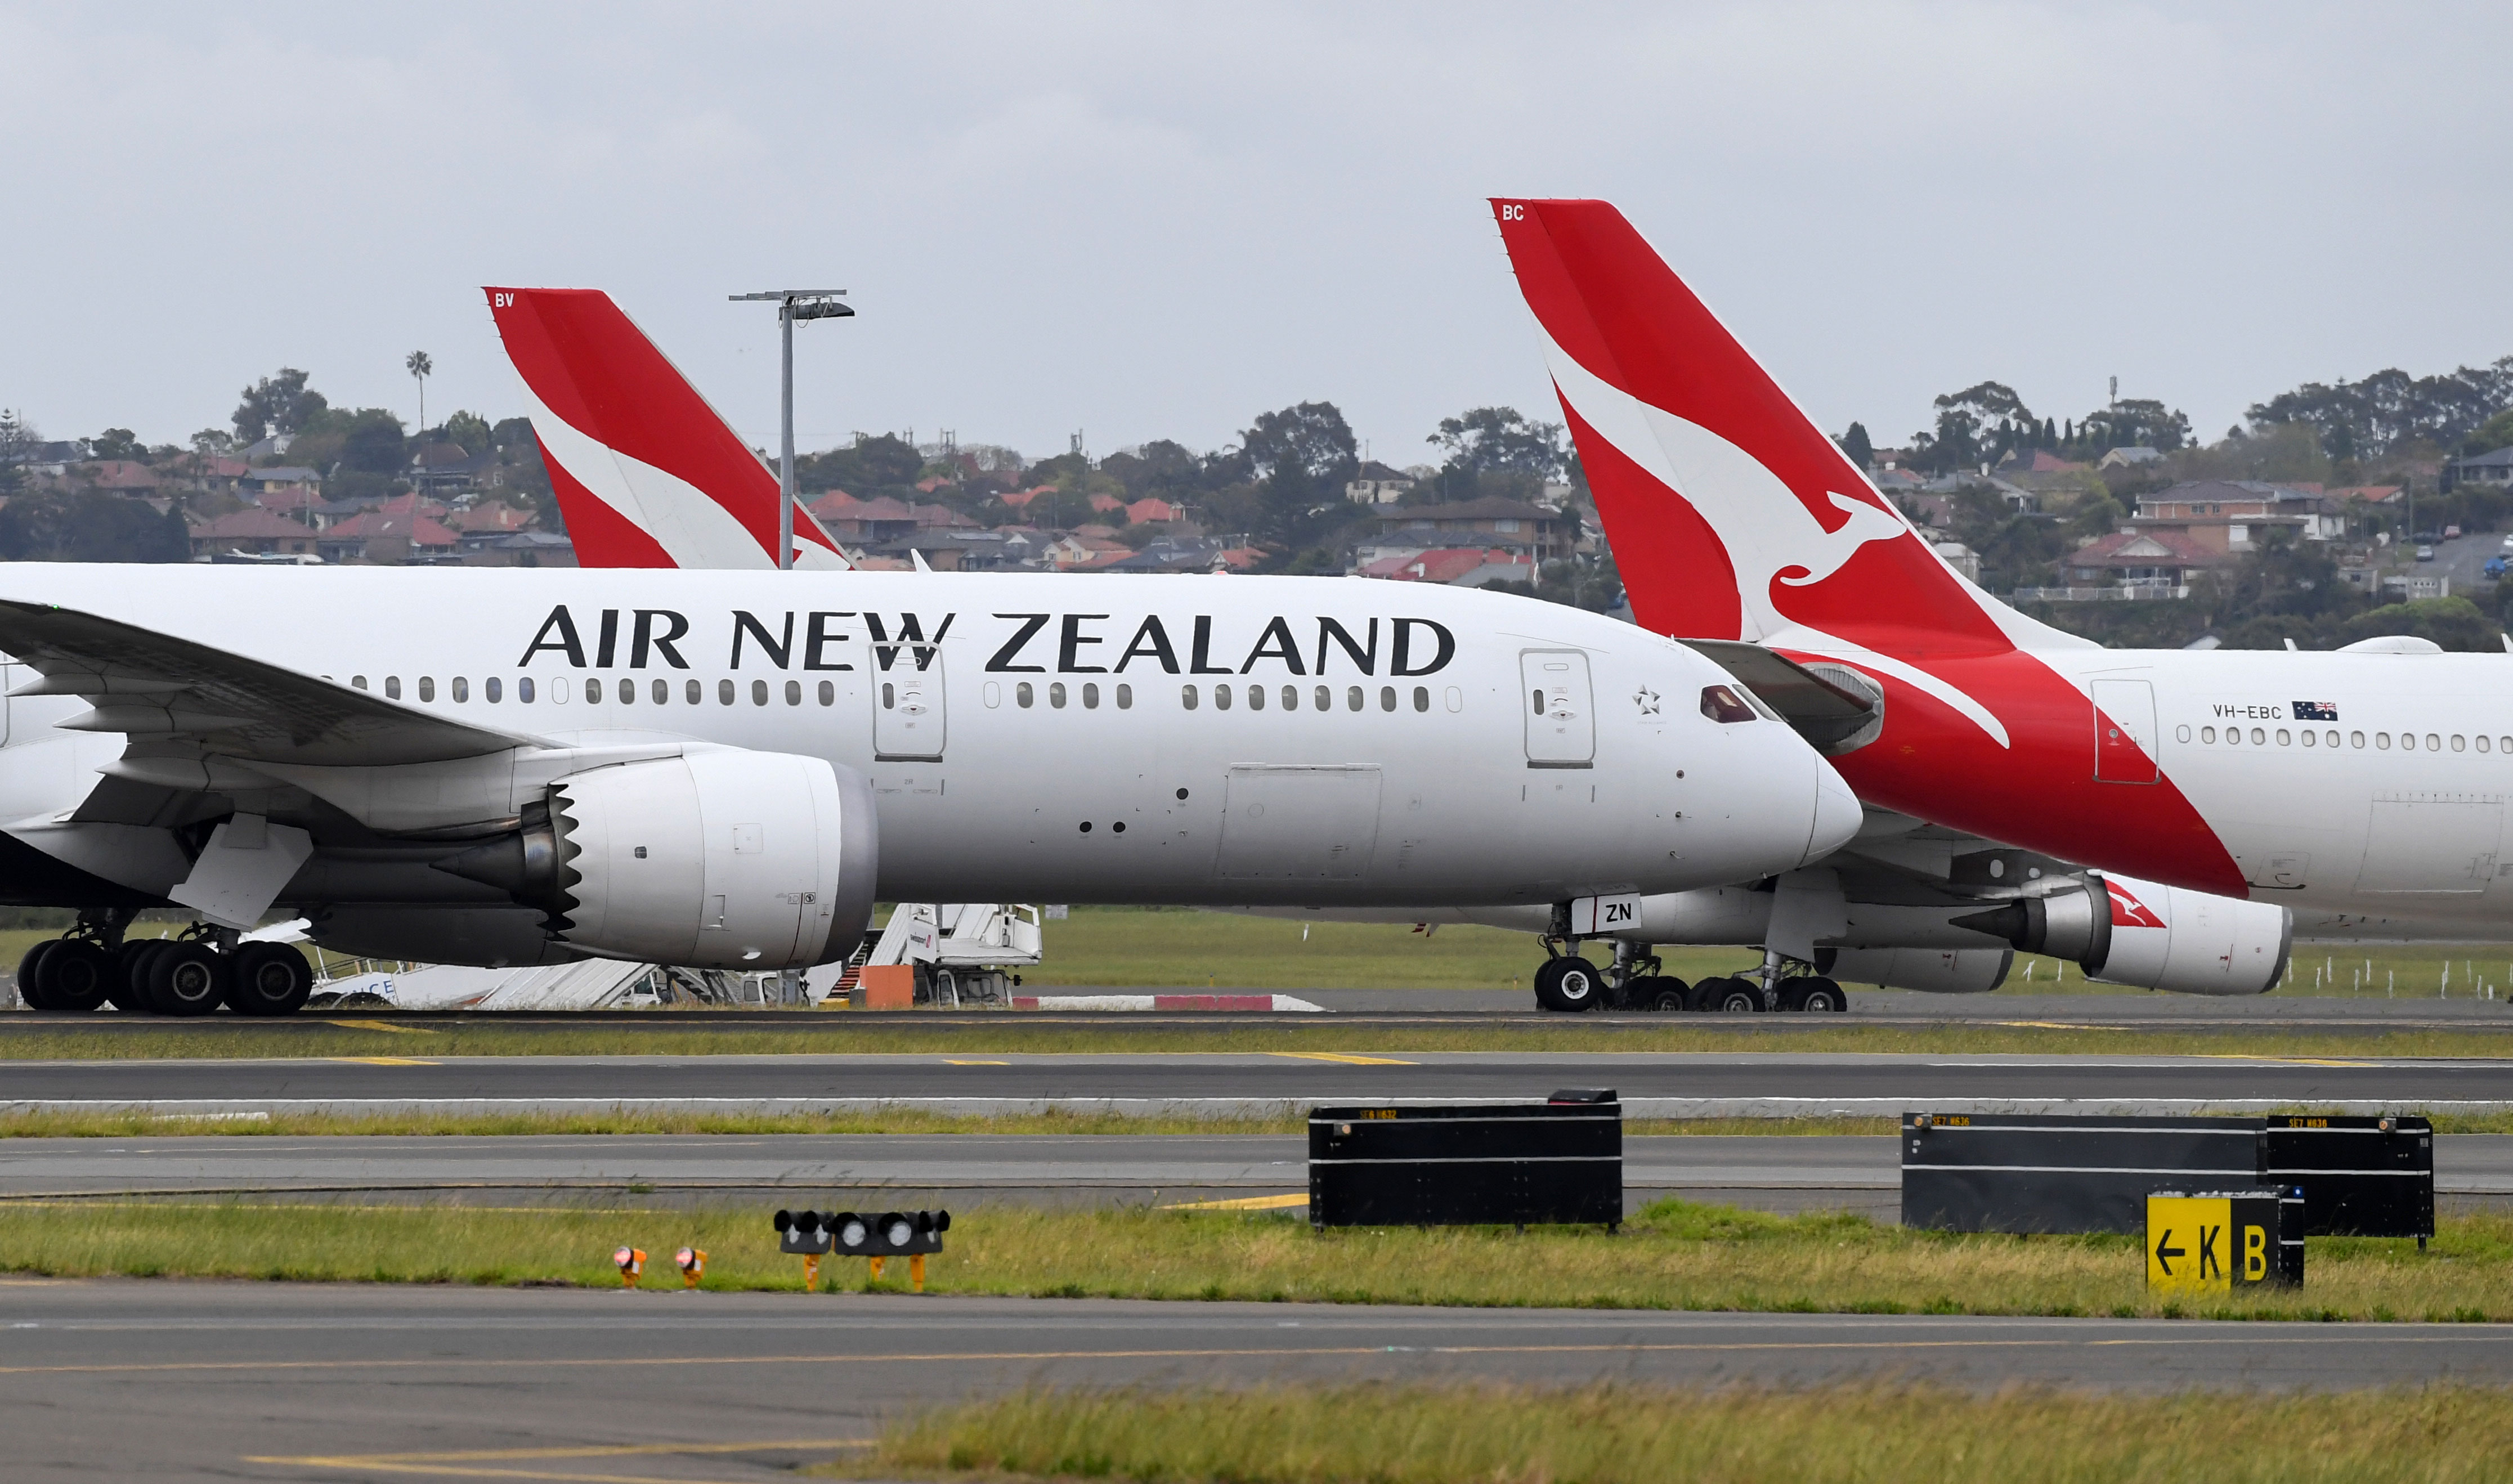 An Air New Zealand flight taxis after it landed at Sydney International Airport in Australia on September 18.